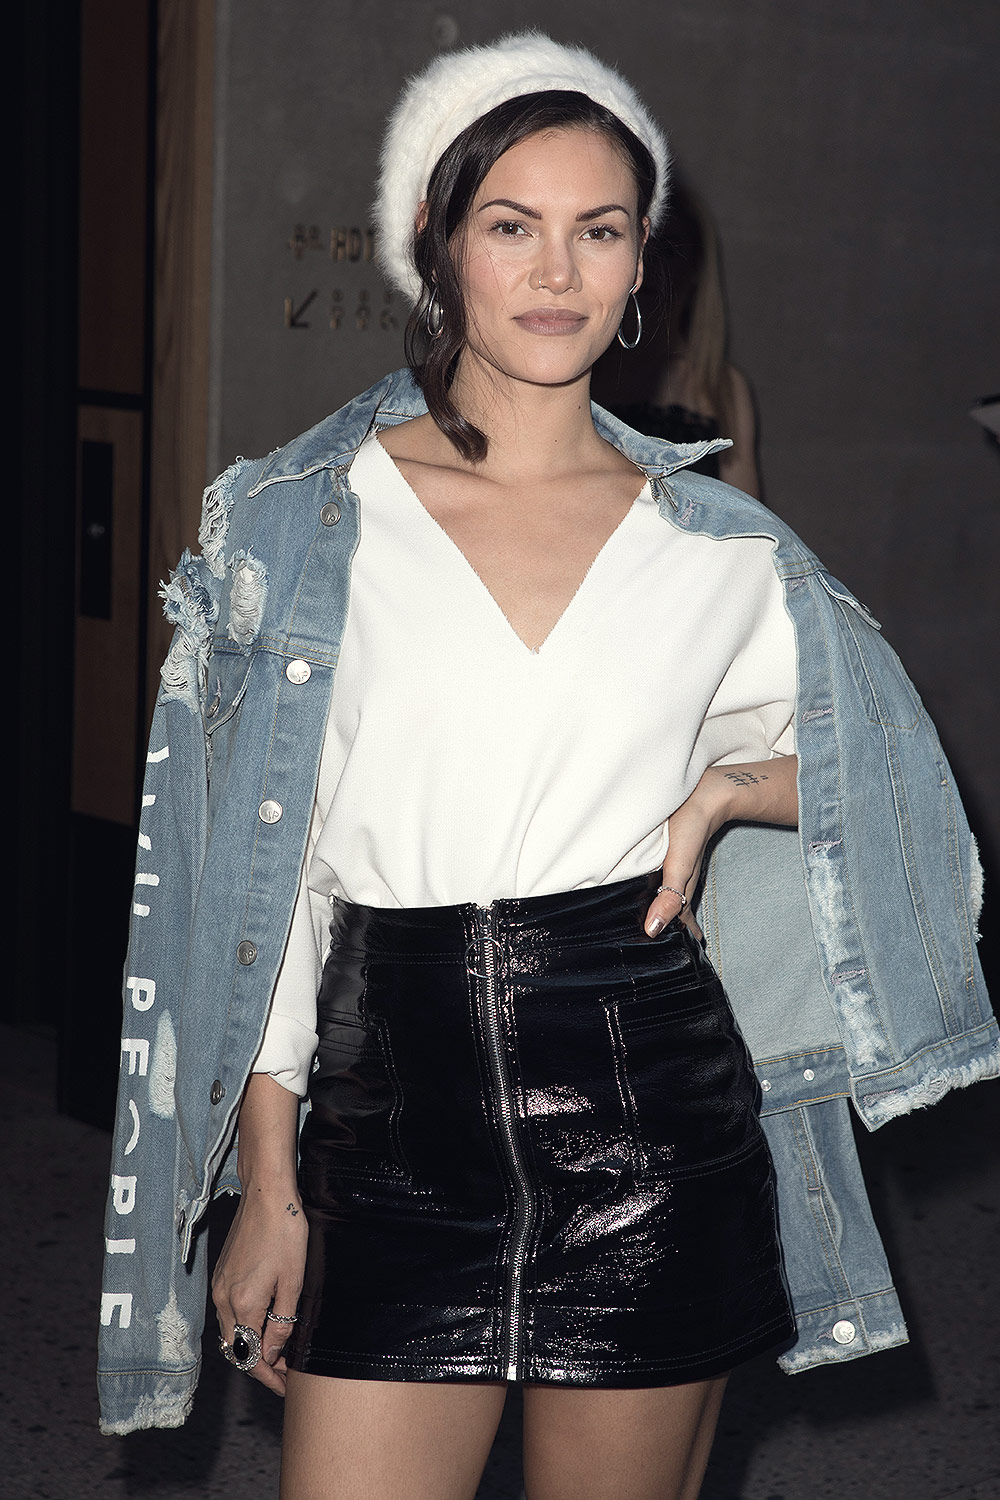 Nobu Hotel Shoreditch: Sinead Harnett Attends Nobu Hotel Shoreditch Launch Party